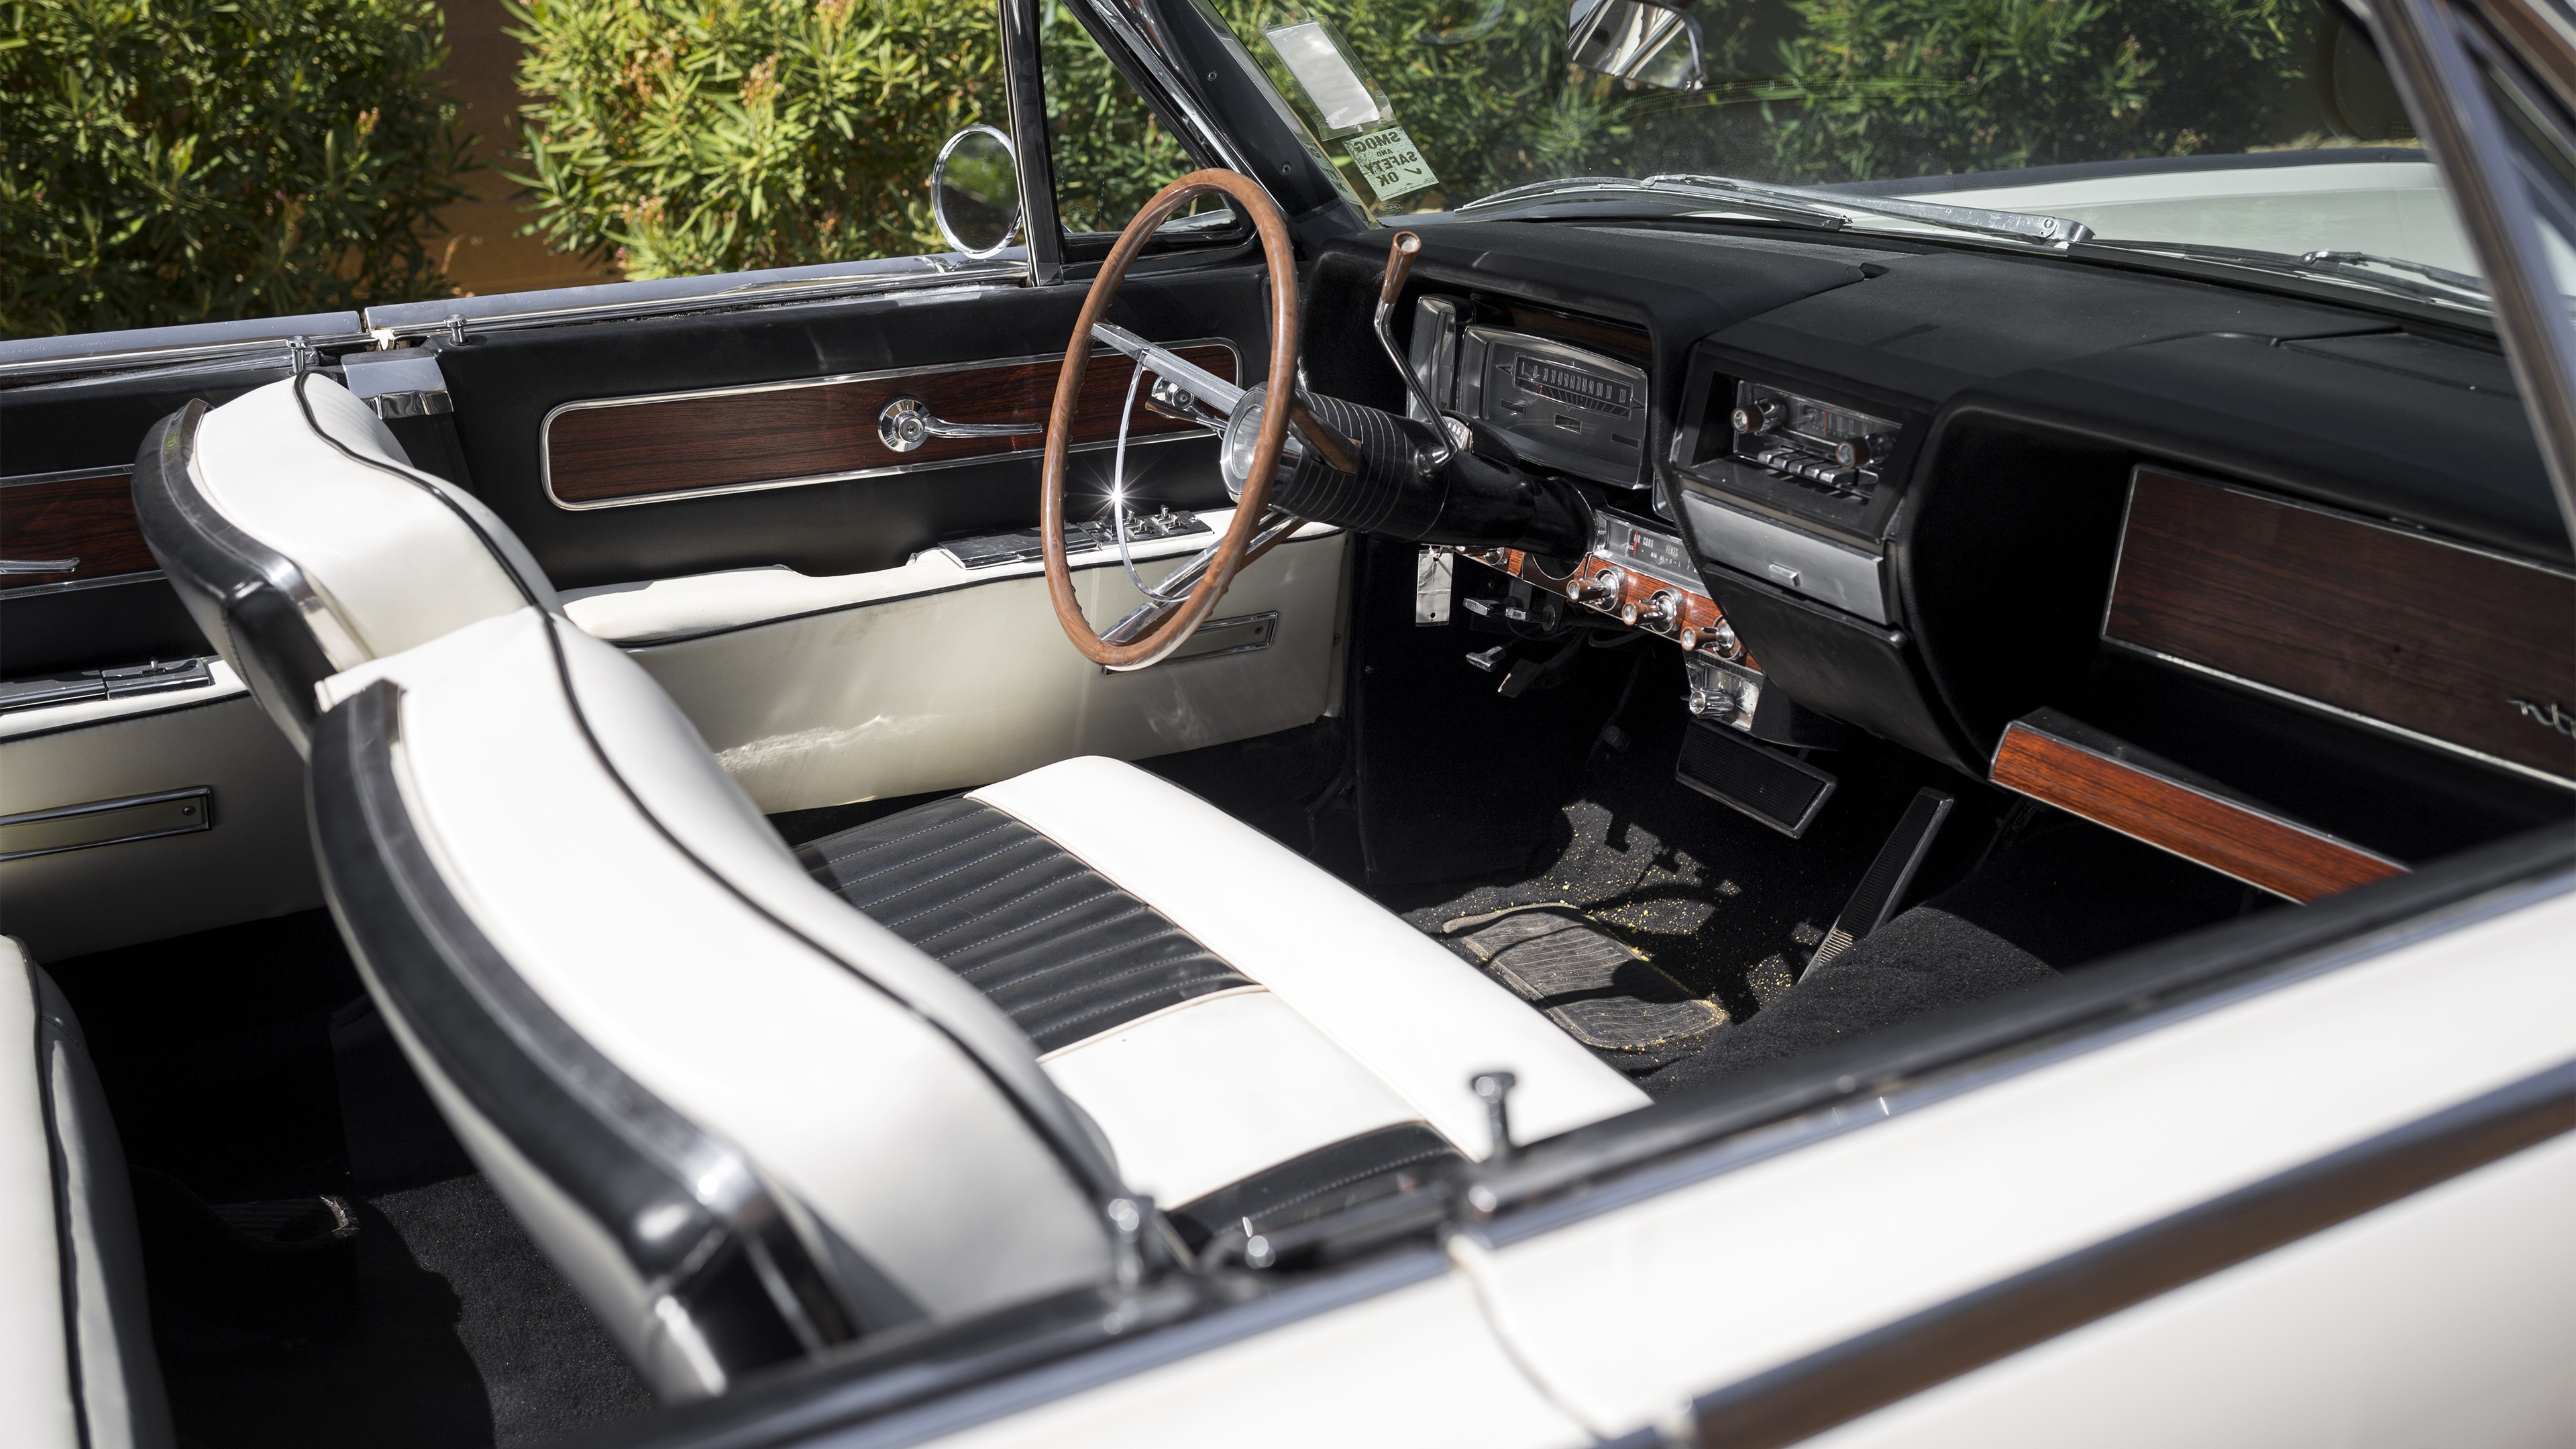 Lincoln Motor Company >> This 1961 Lincoln Continental Was Loaned to Jacqueline Kennedy for Personal Use - autoevolution